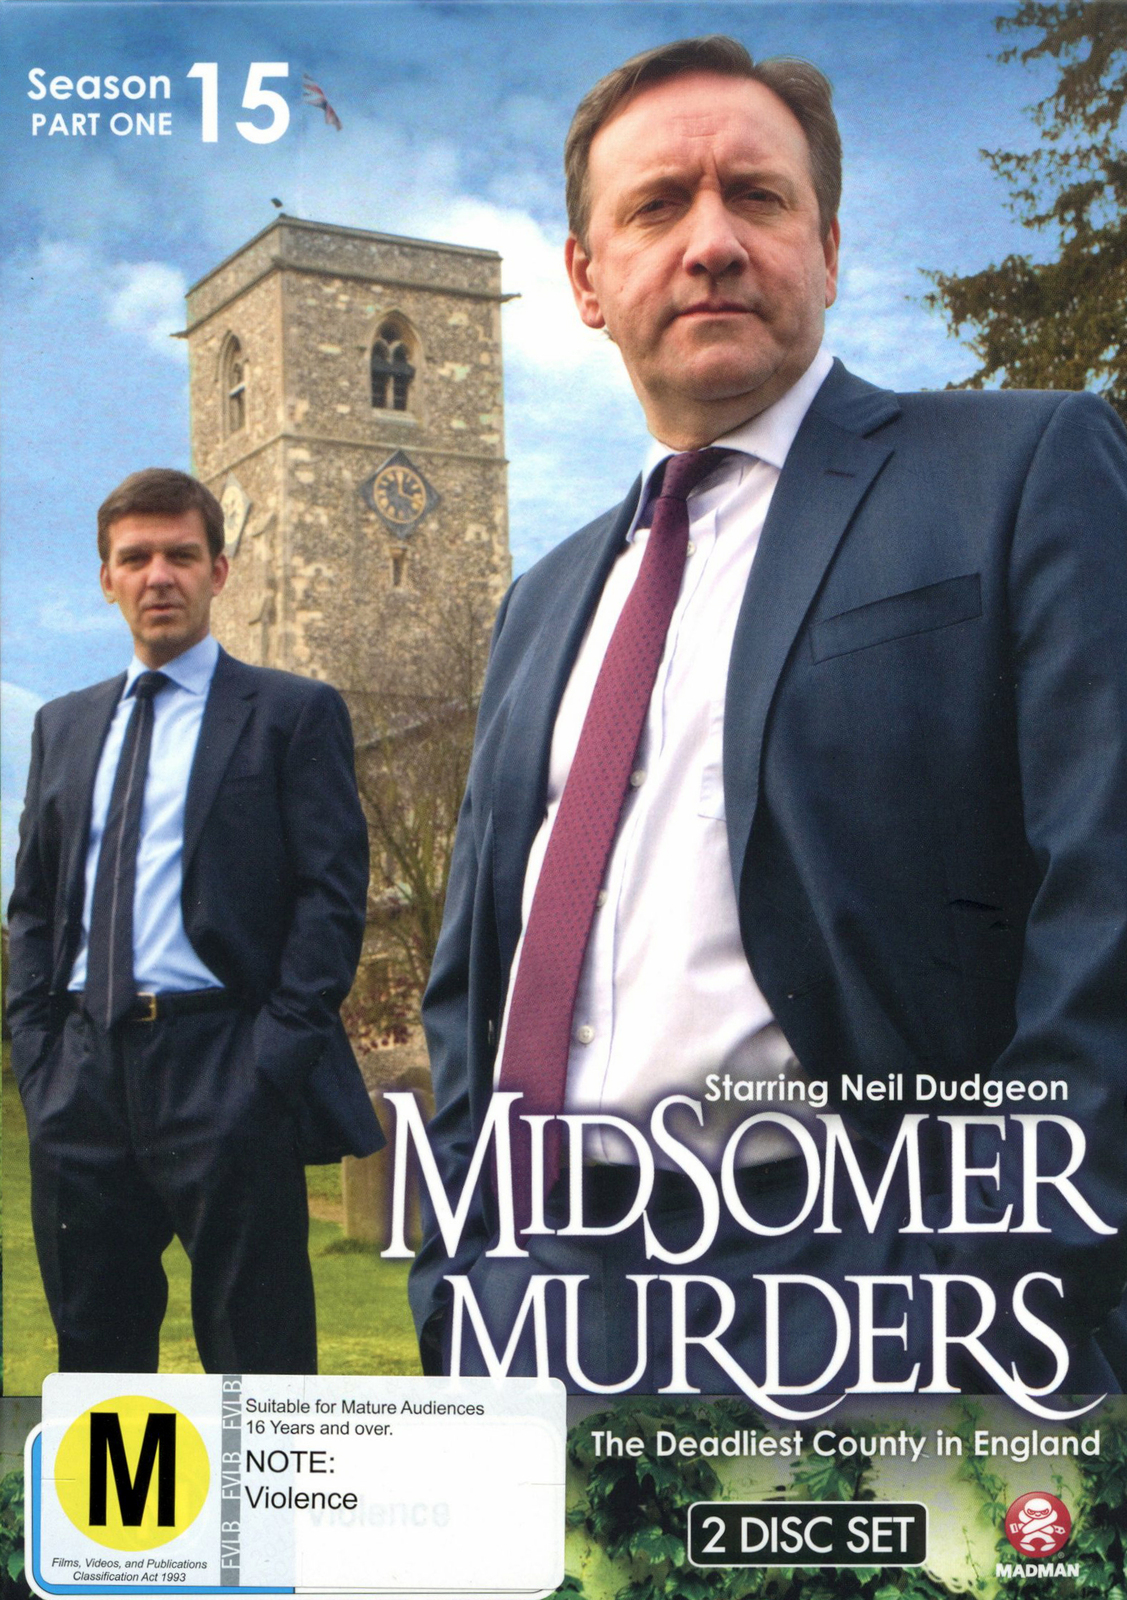 Midsomer Murders - Season 15 Part 1 on DVD image